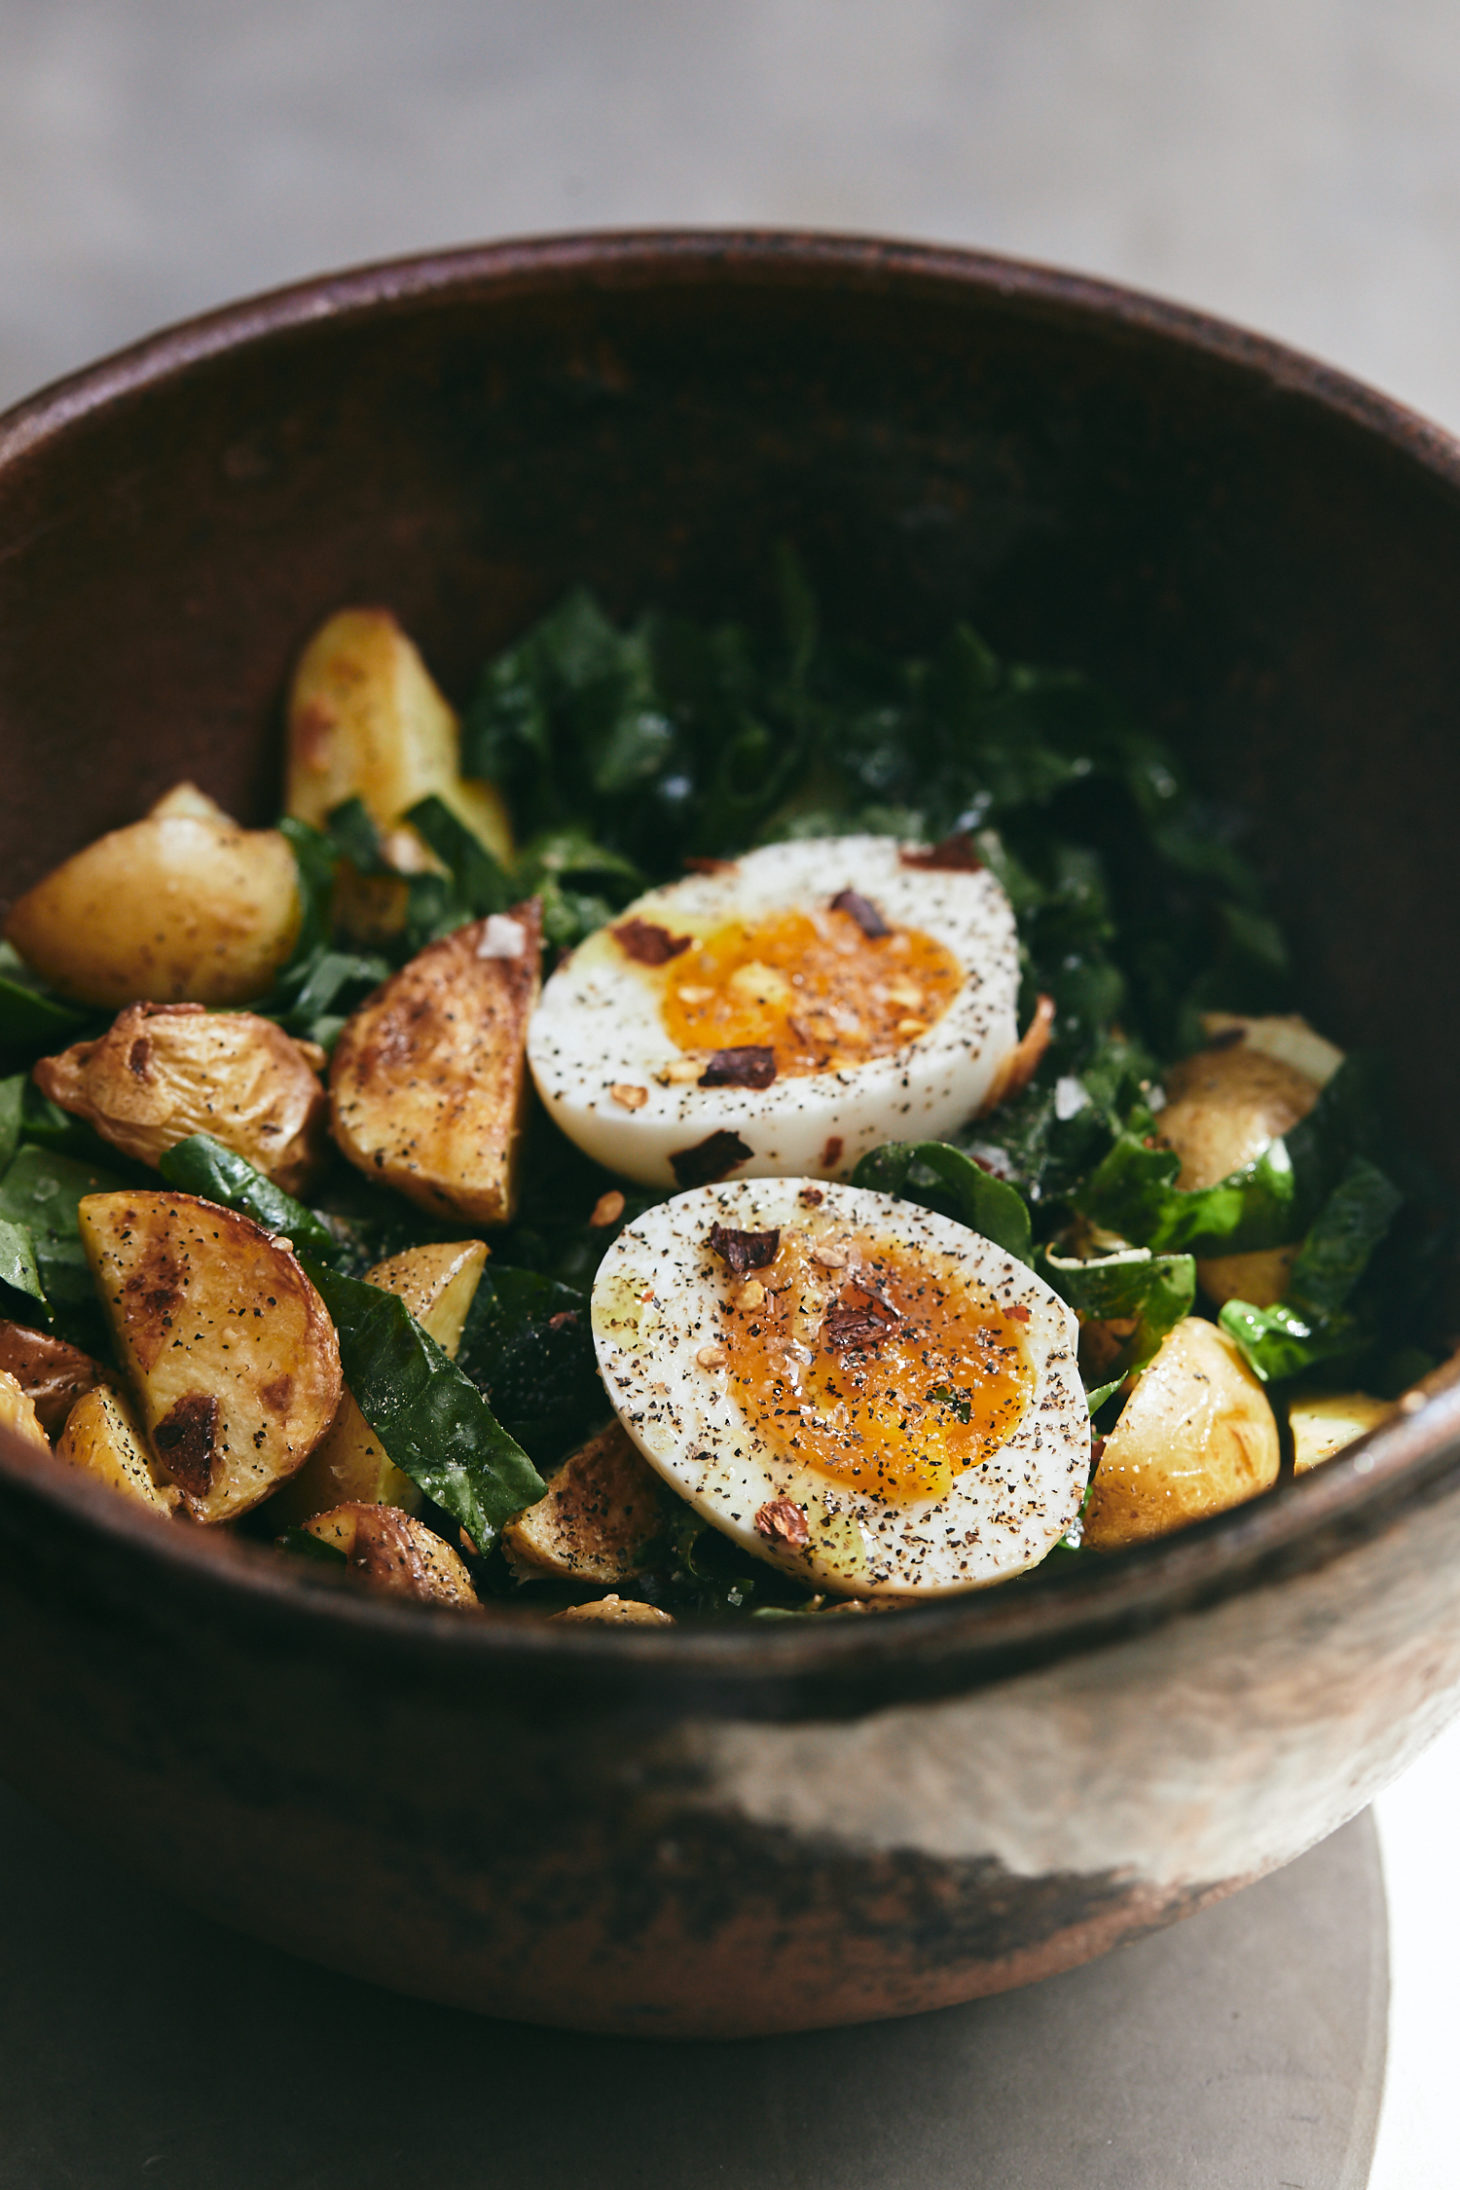 Side-angle photograph of a spinach salad topped with roasted potato wedges and soft-boiled eggs.